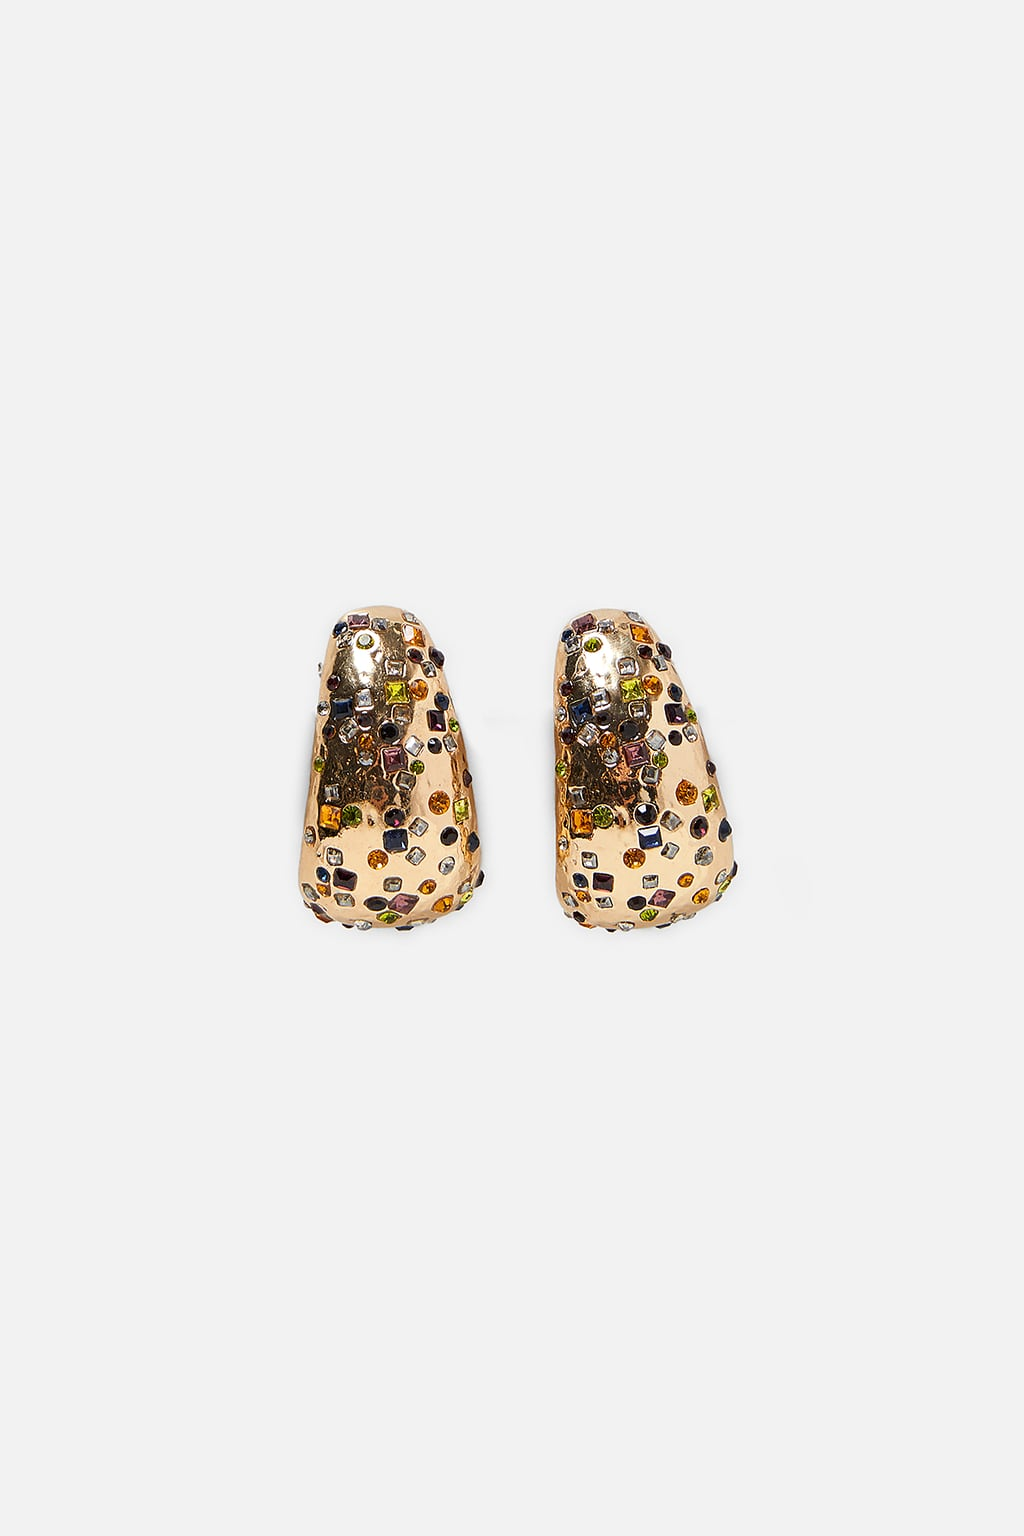 ZARA Beaded Earrings-$20